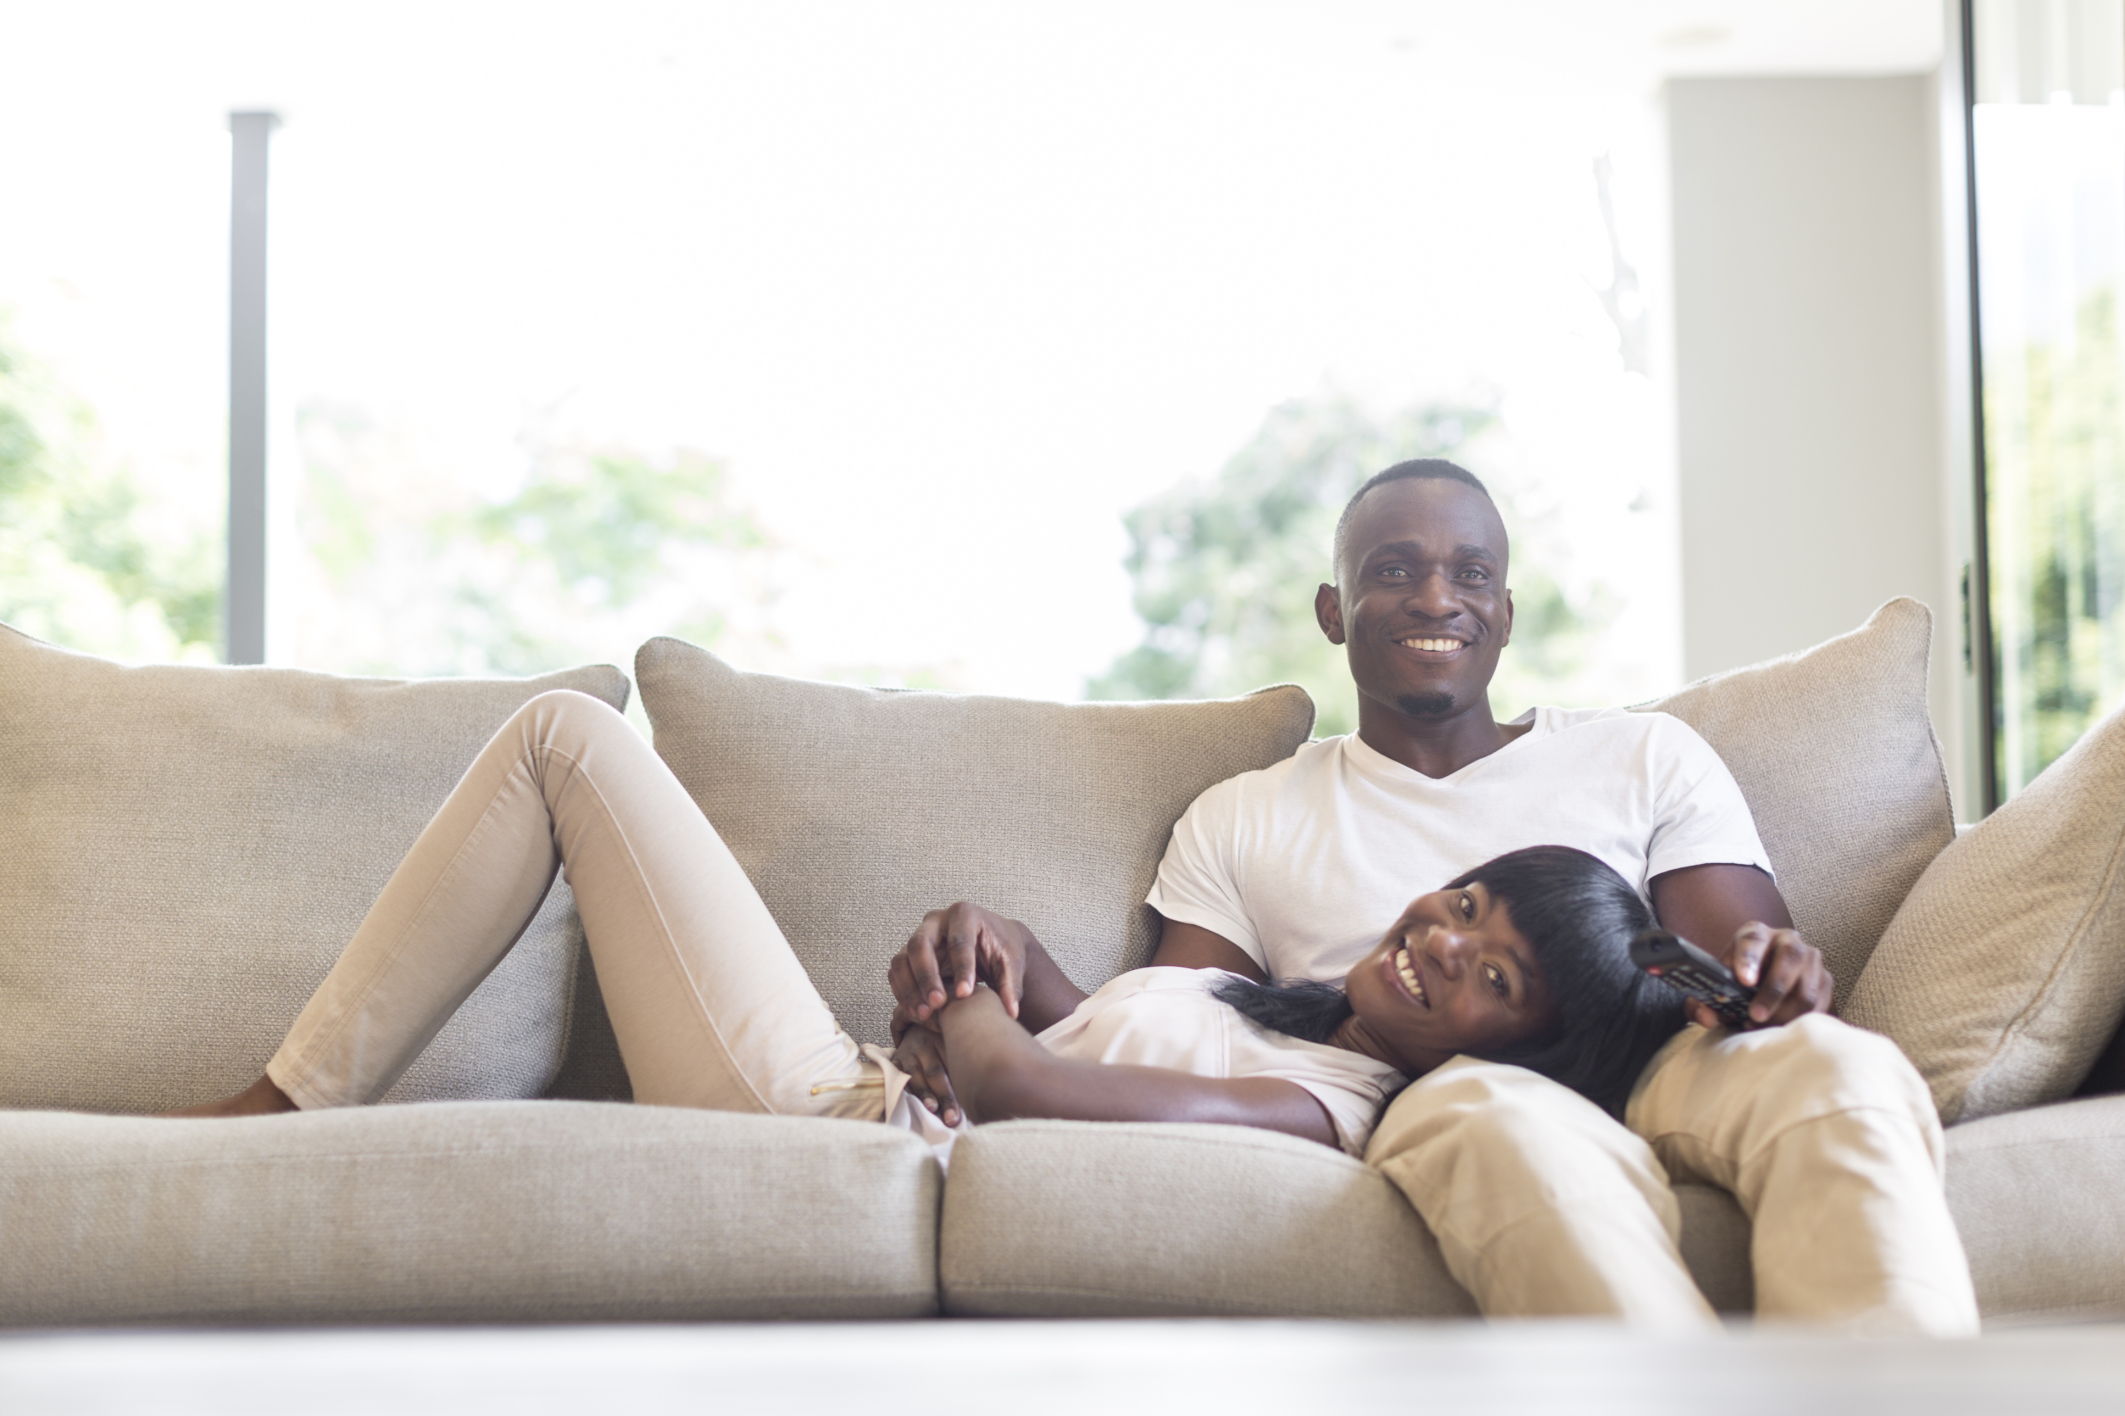 Portrait of couple relaxing on bed, Cape Town, South Africa